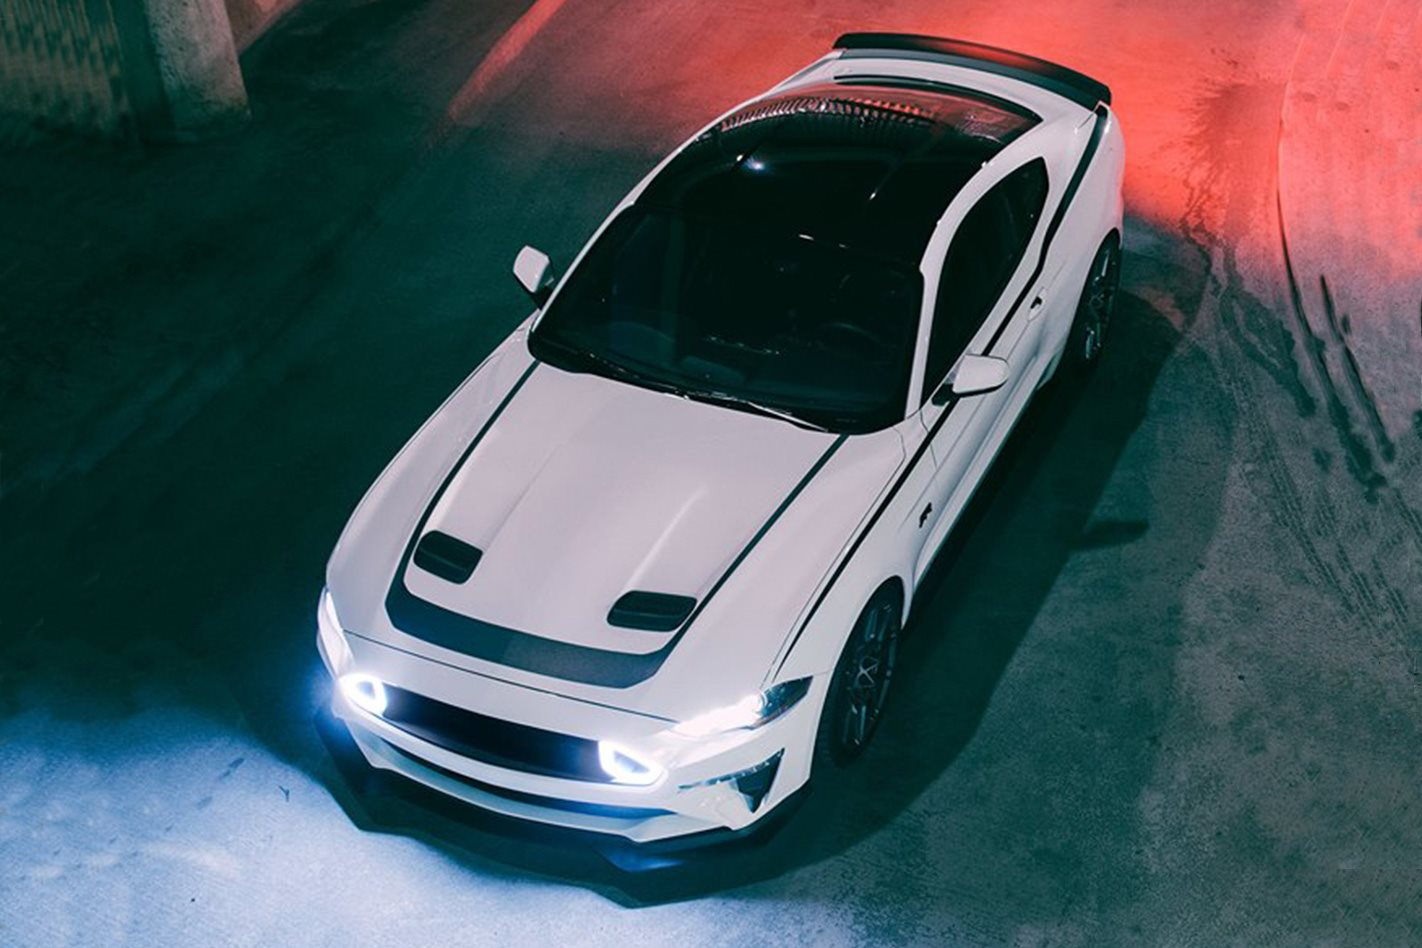 2018--Ford-Mustang-RTR-exterior.jpg